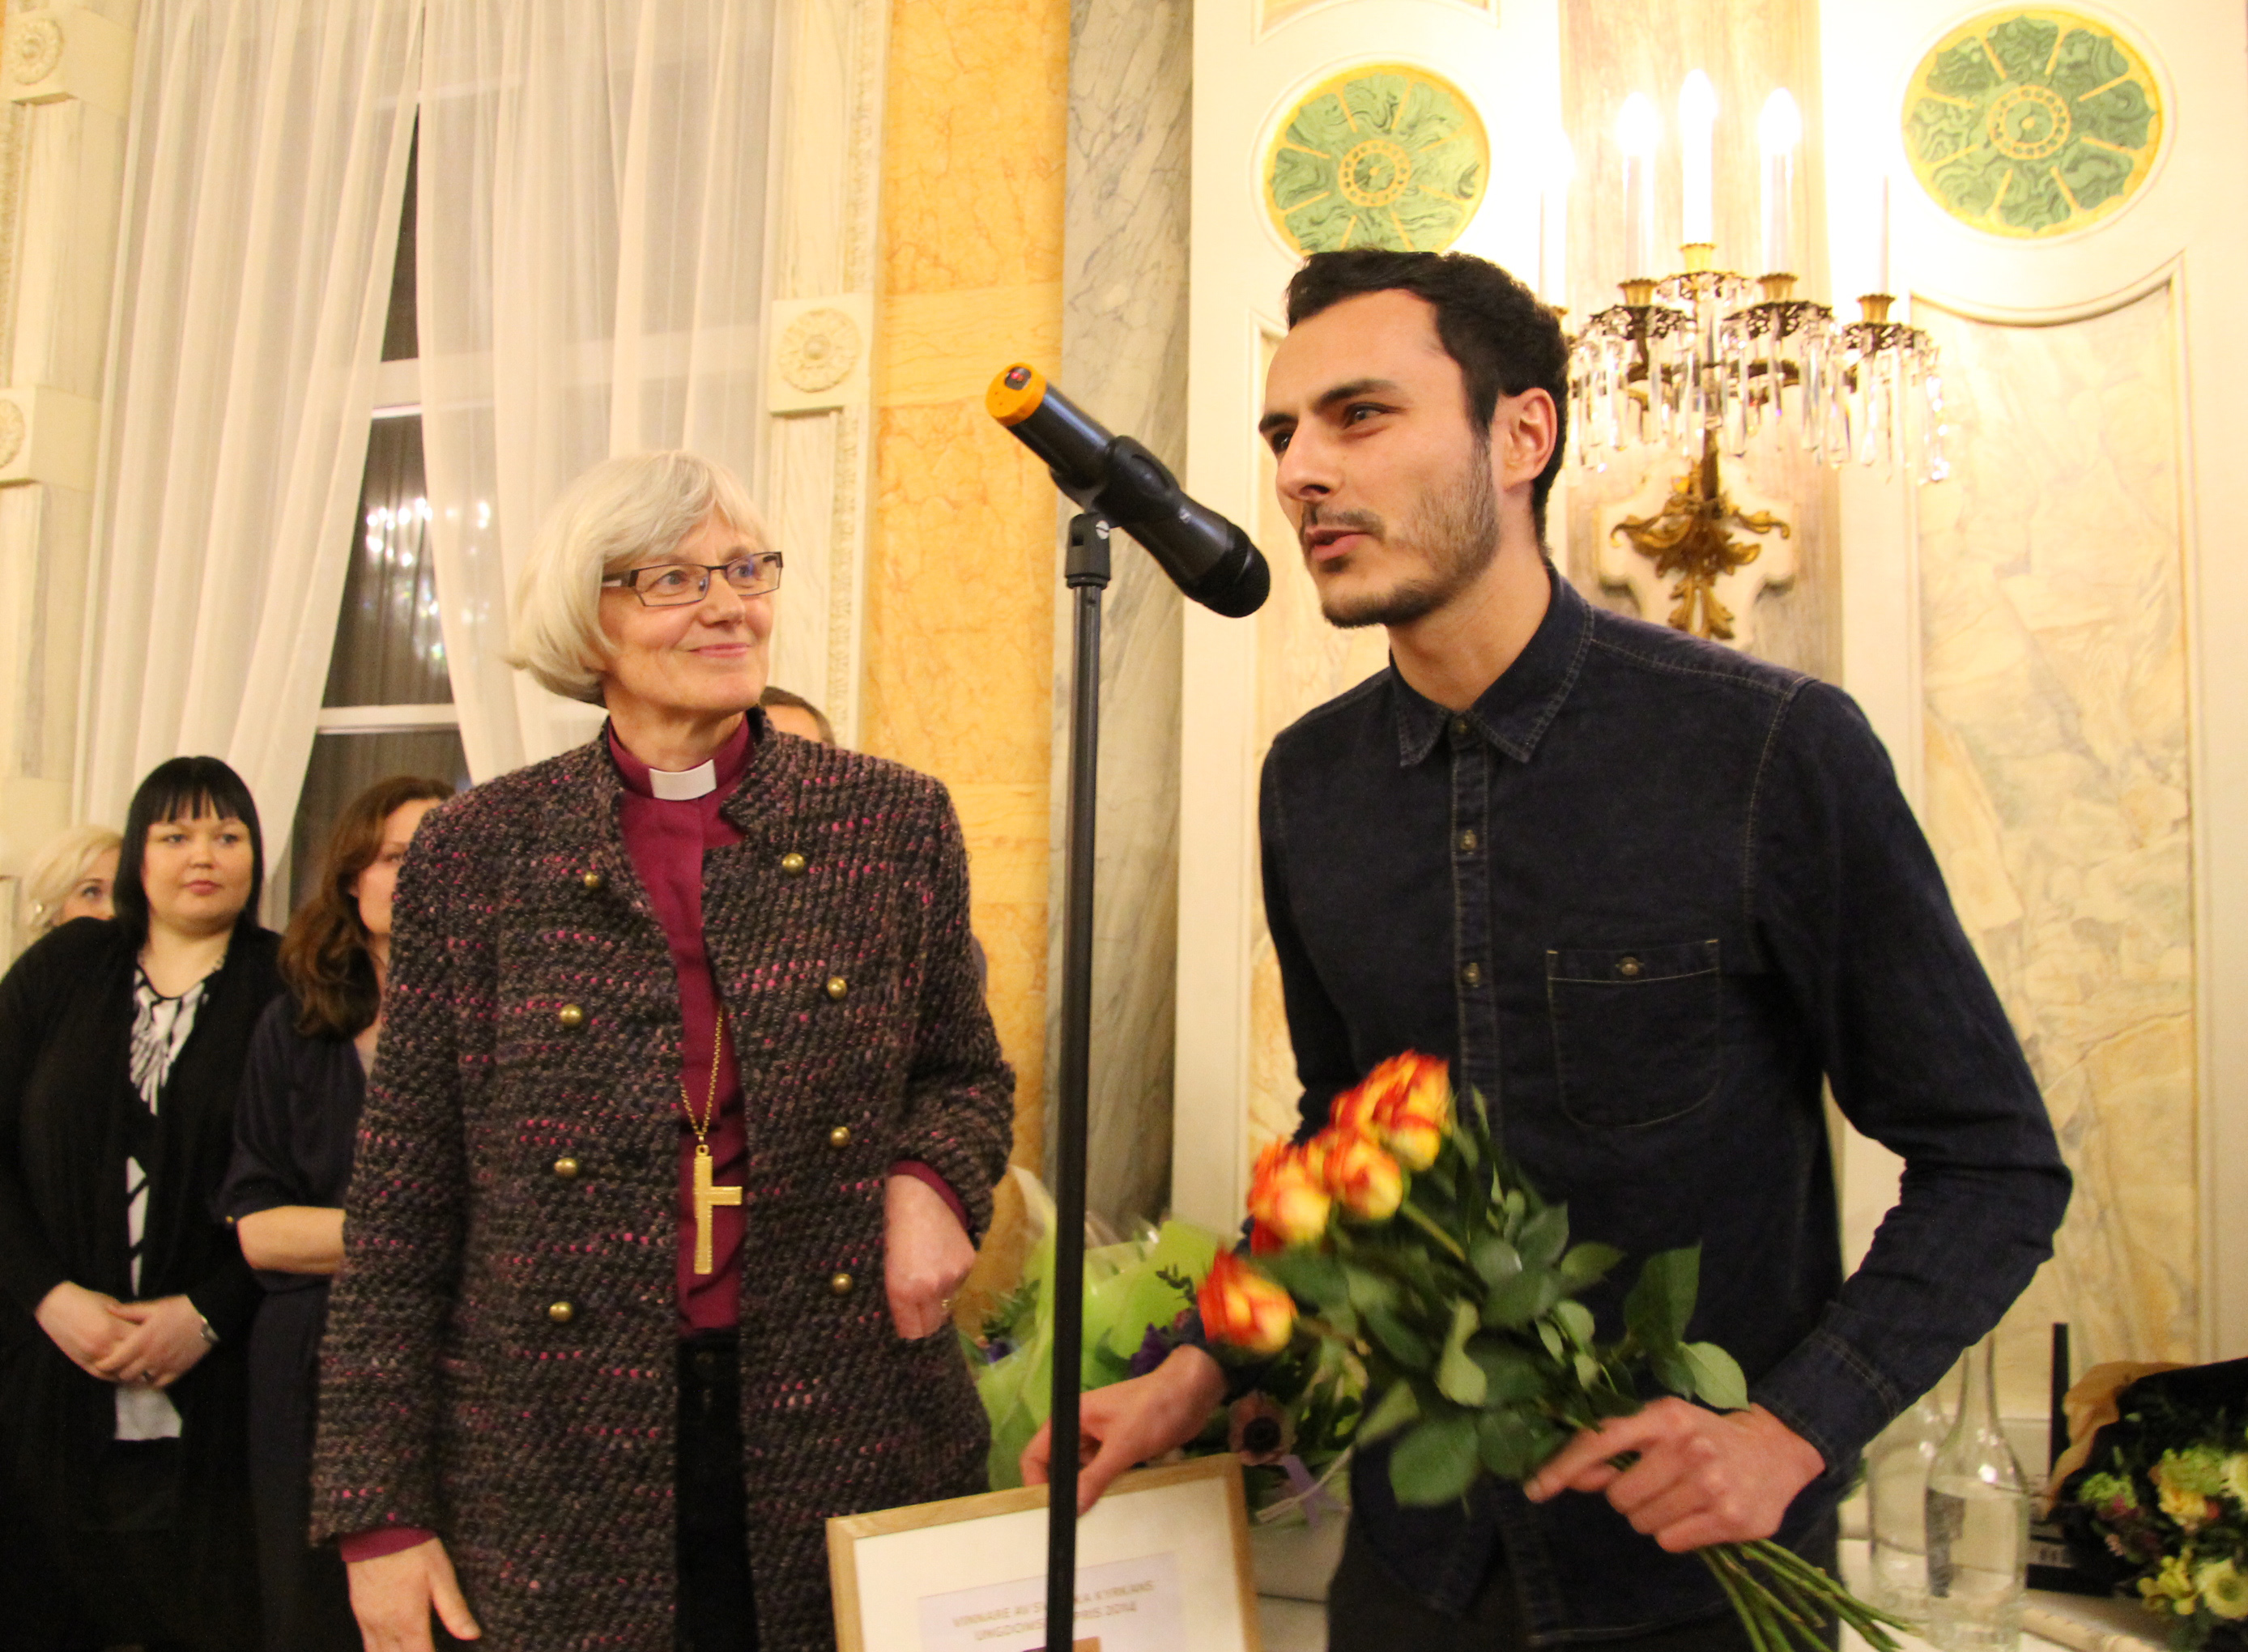 Bishop Antje Jackelen presenting Noof Ousellam with the award for Best Film at the BUFF Film Festival in Sweden. Photograph by Maria Lundström